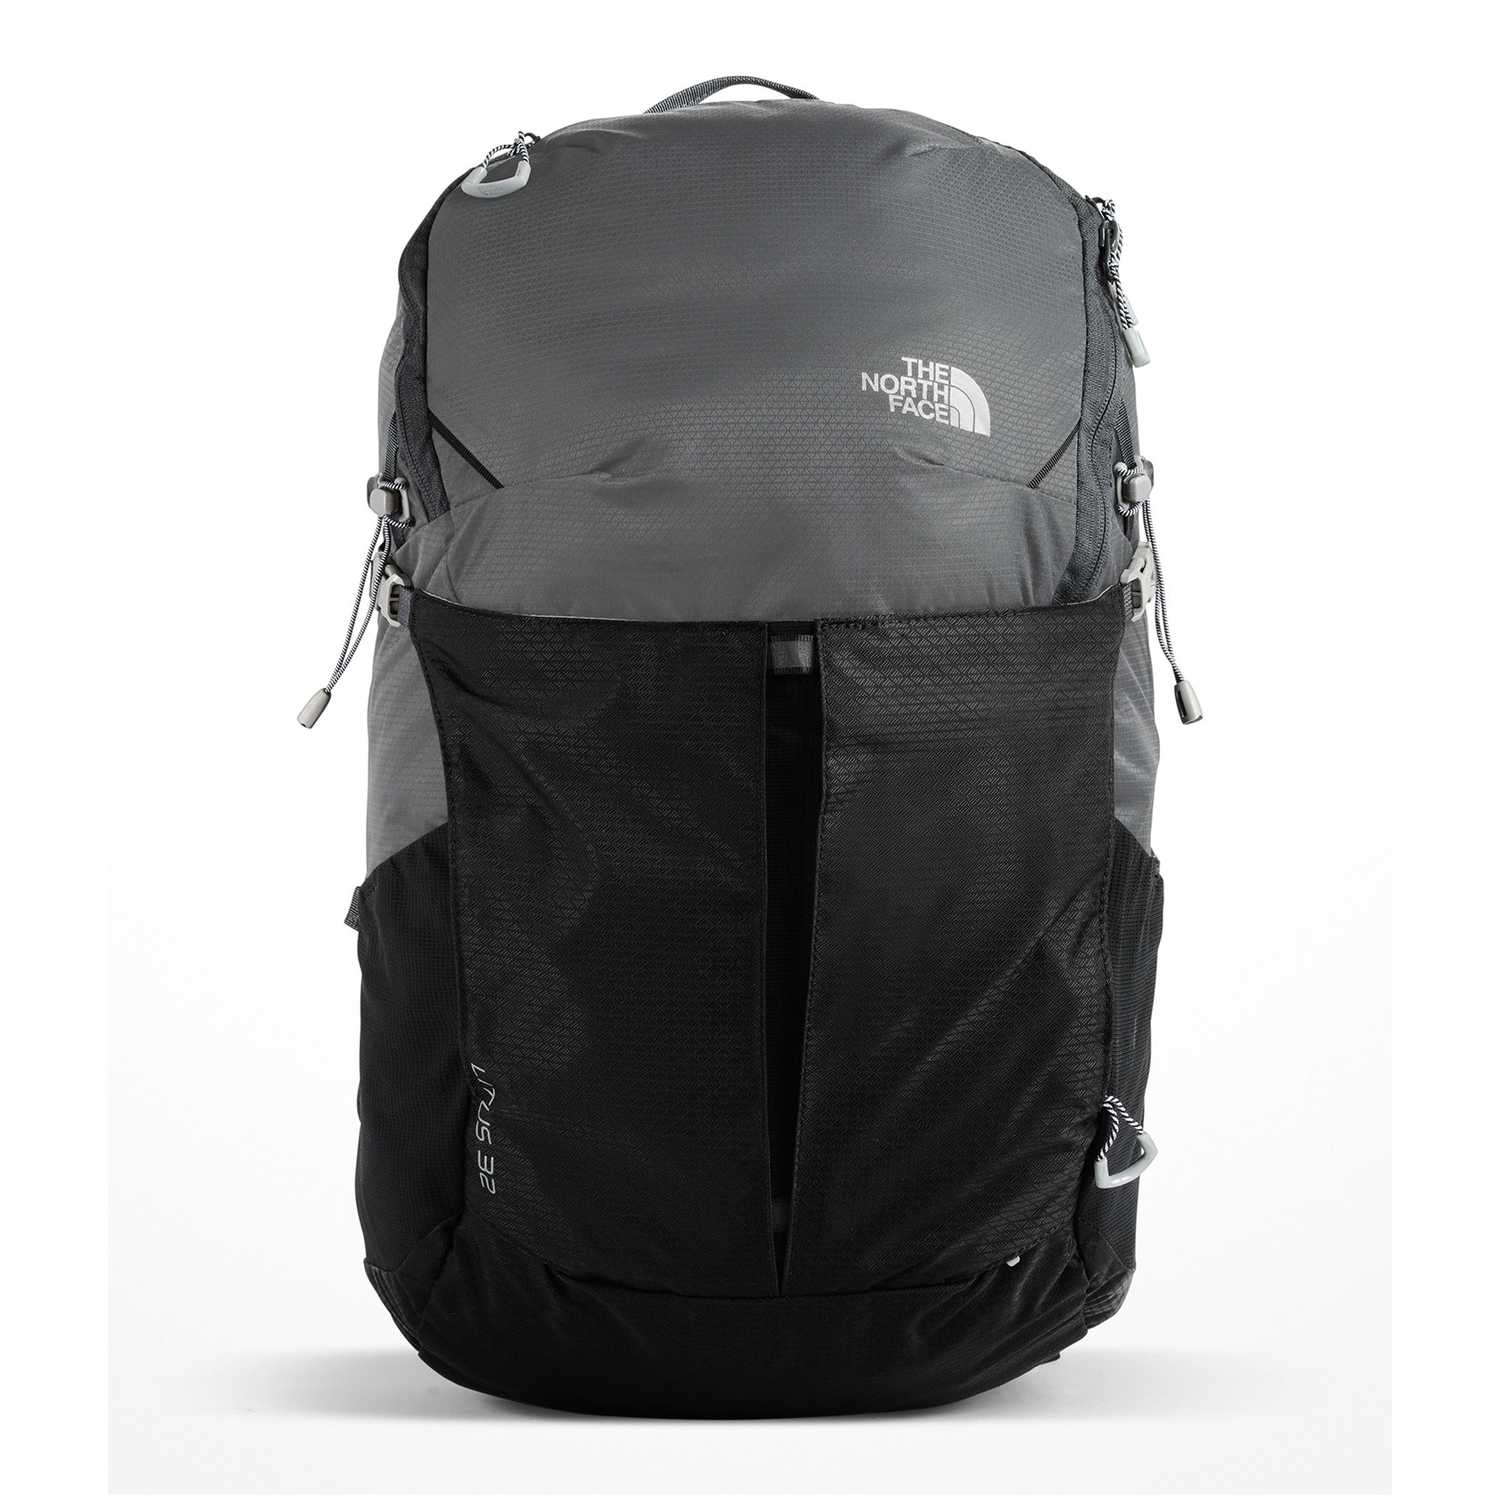 Mochila  The North Face Gris / negro litus 32